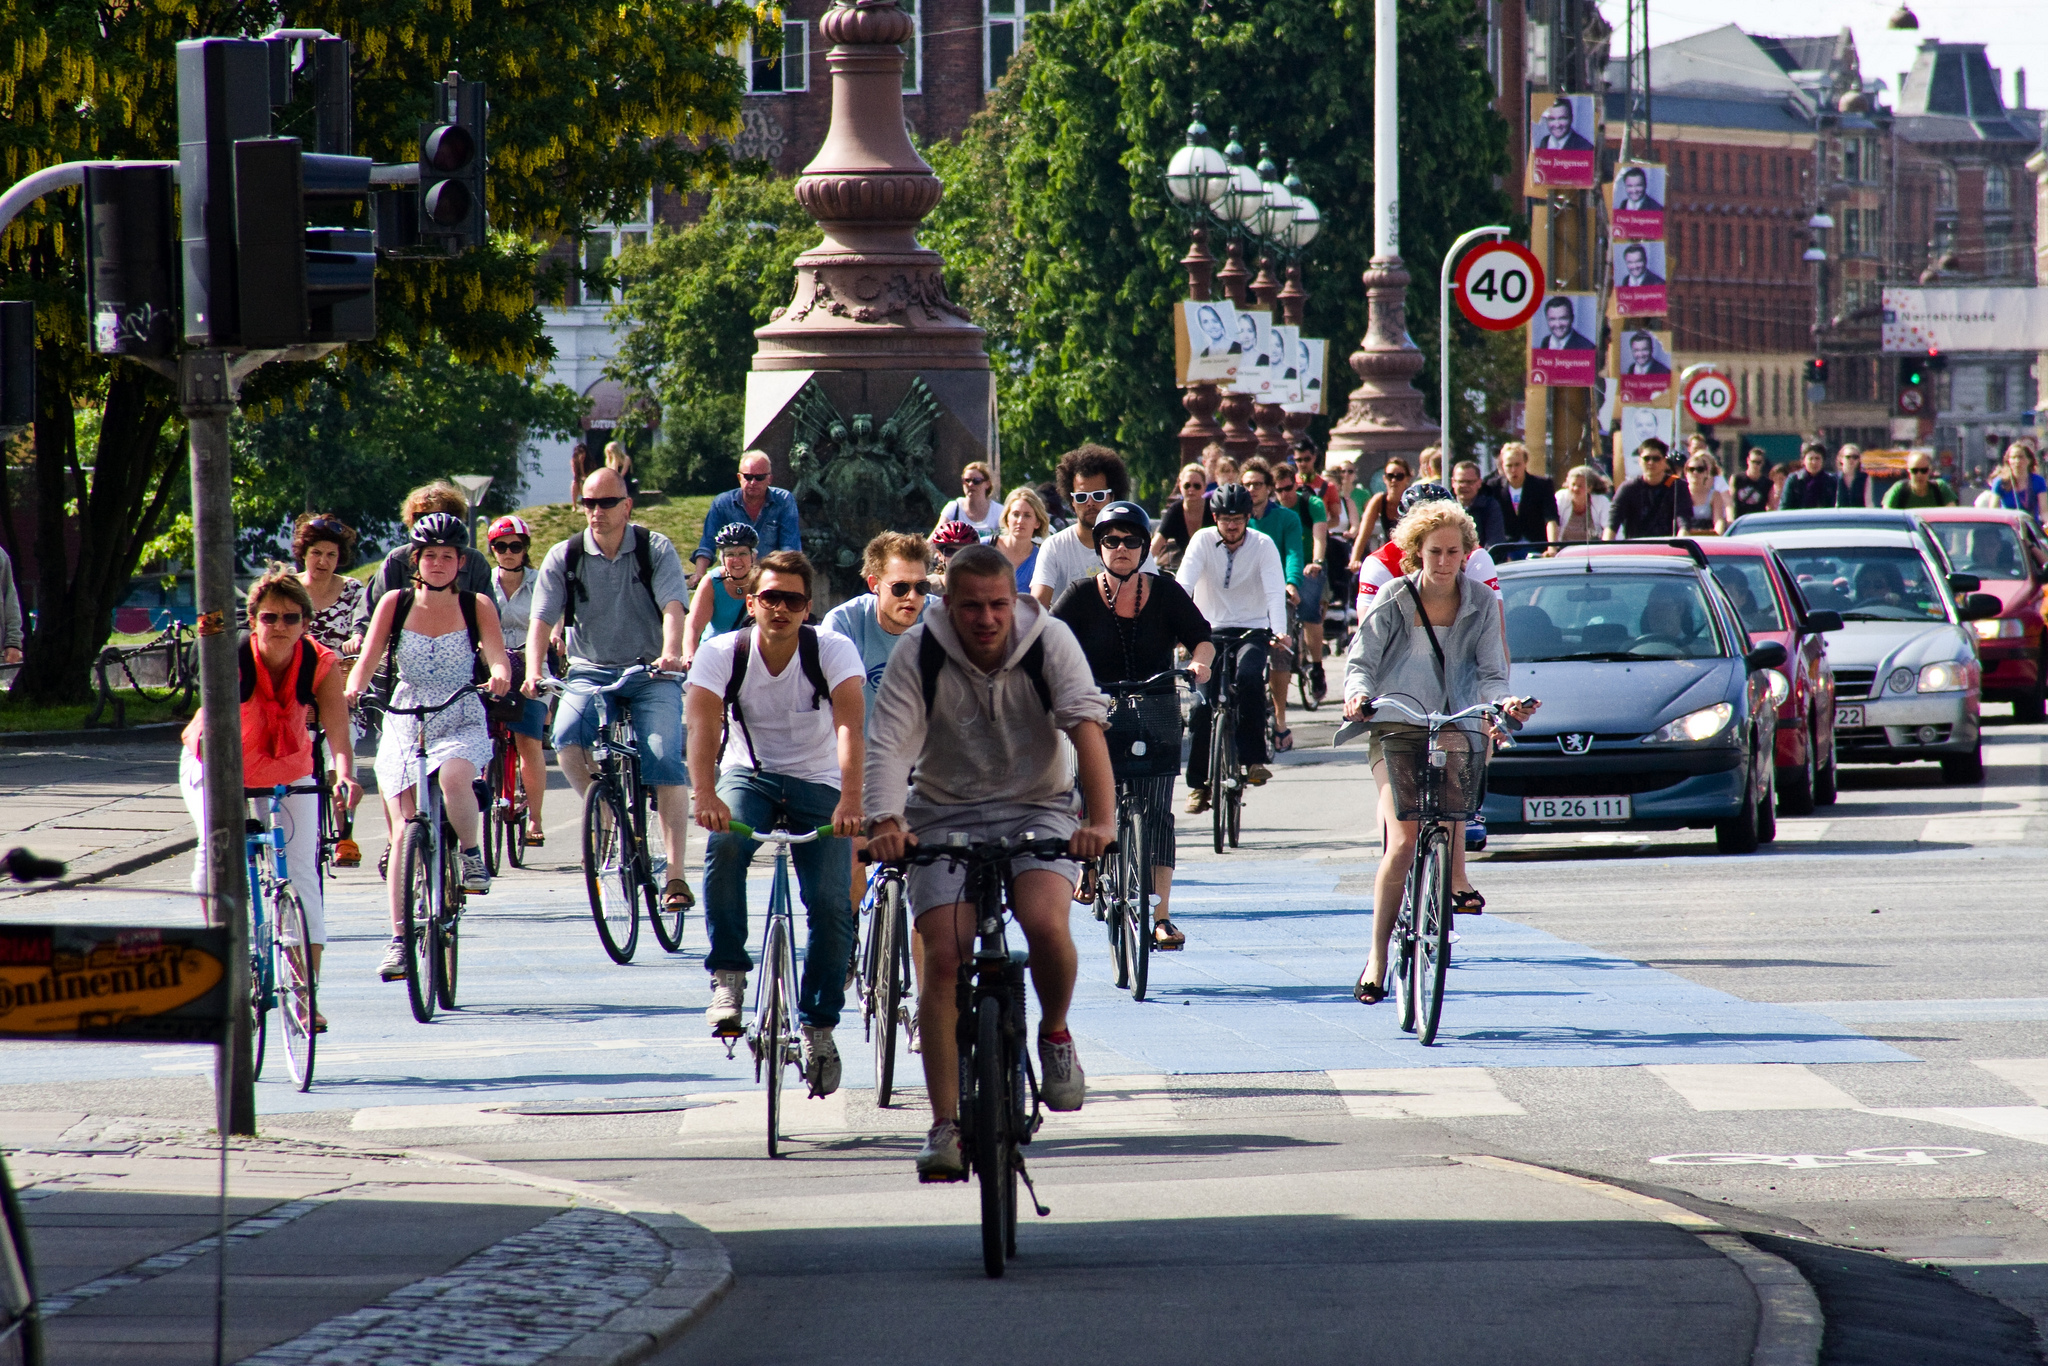 copenhagen-cyclists-credit-copenhagen-cycle-chic.jpg